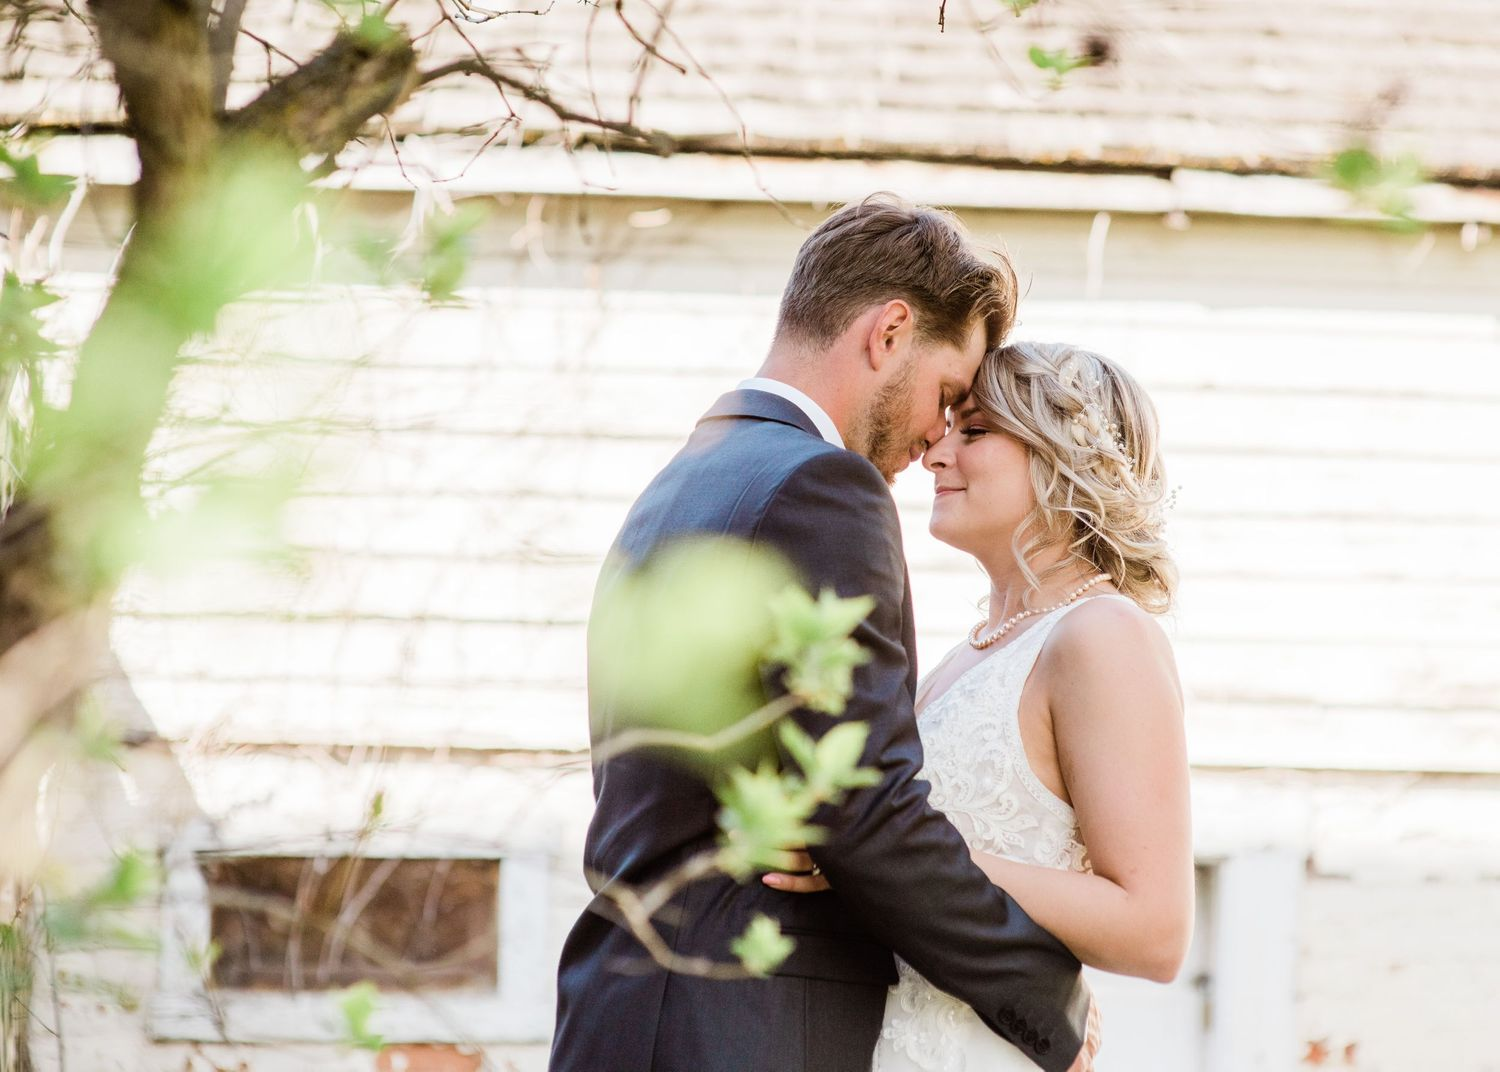 small-weddings-covid-weddings-bride-and-groom-happy-first-look